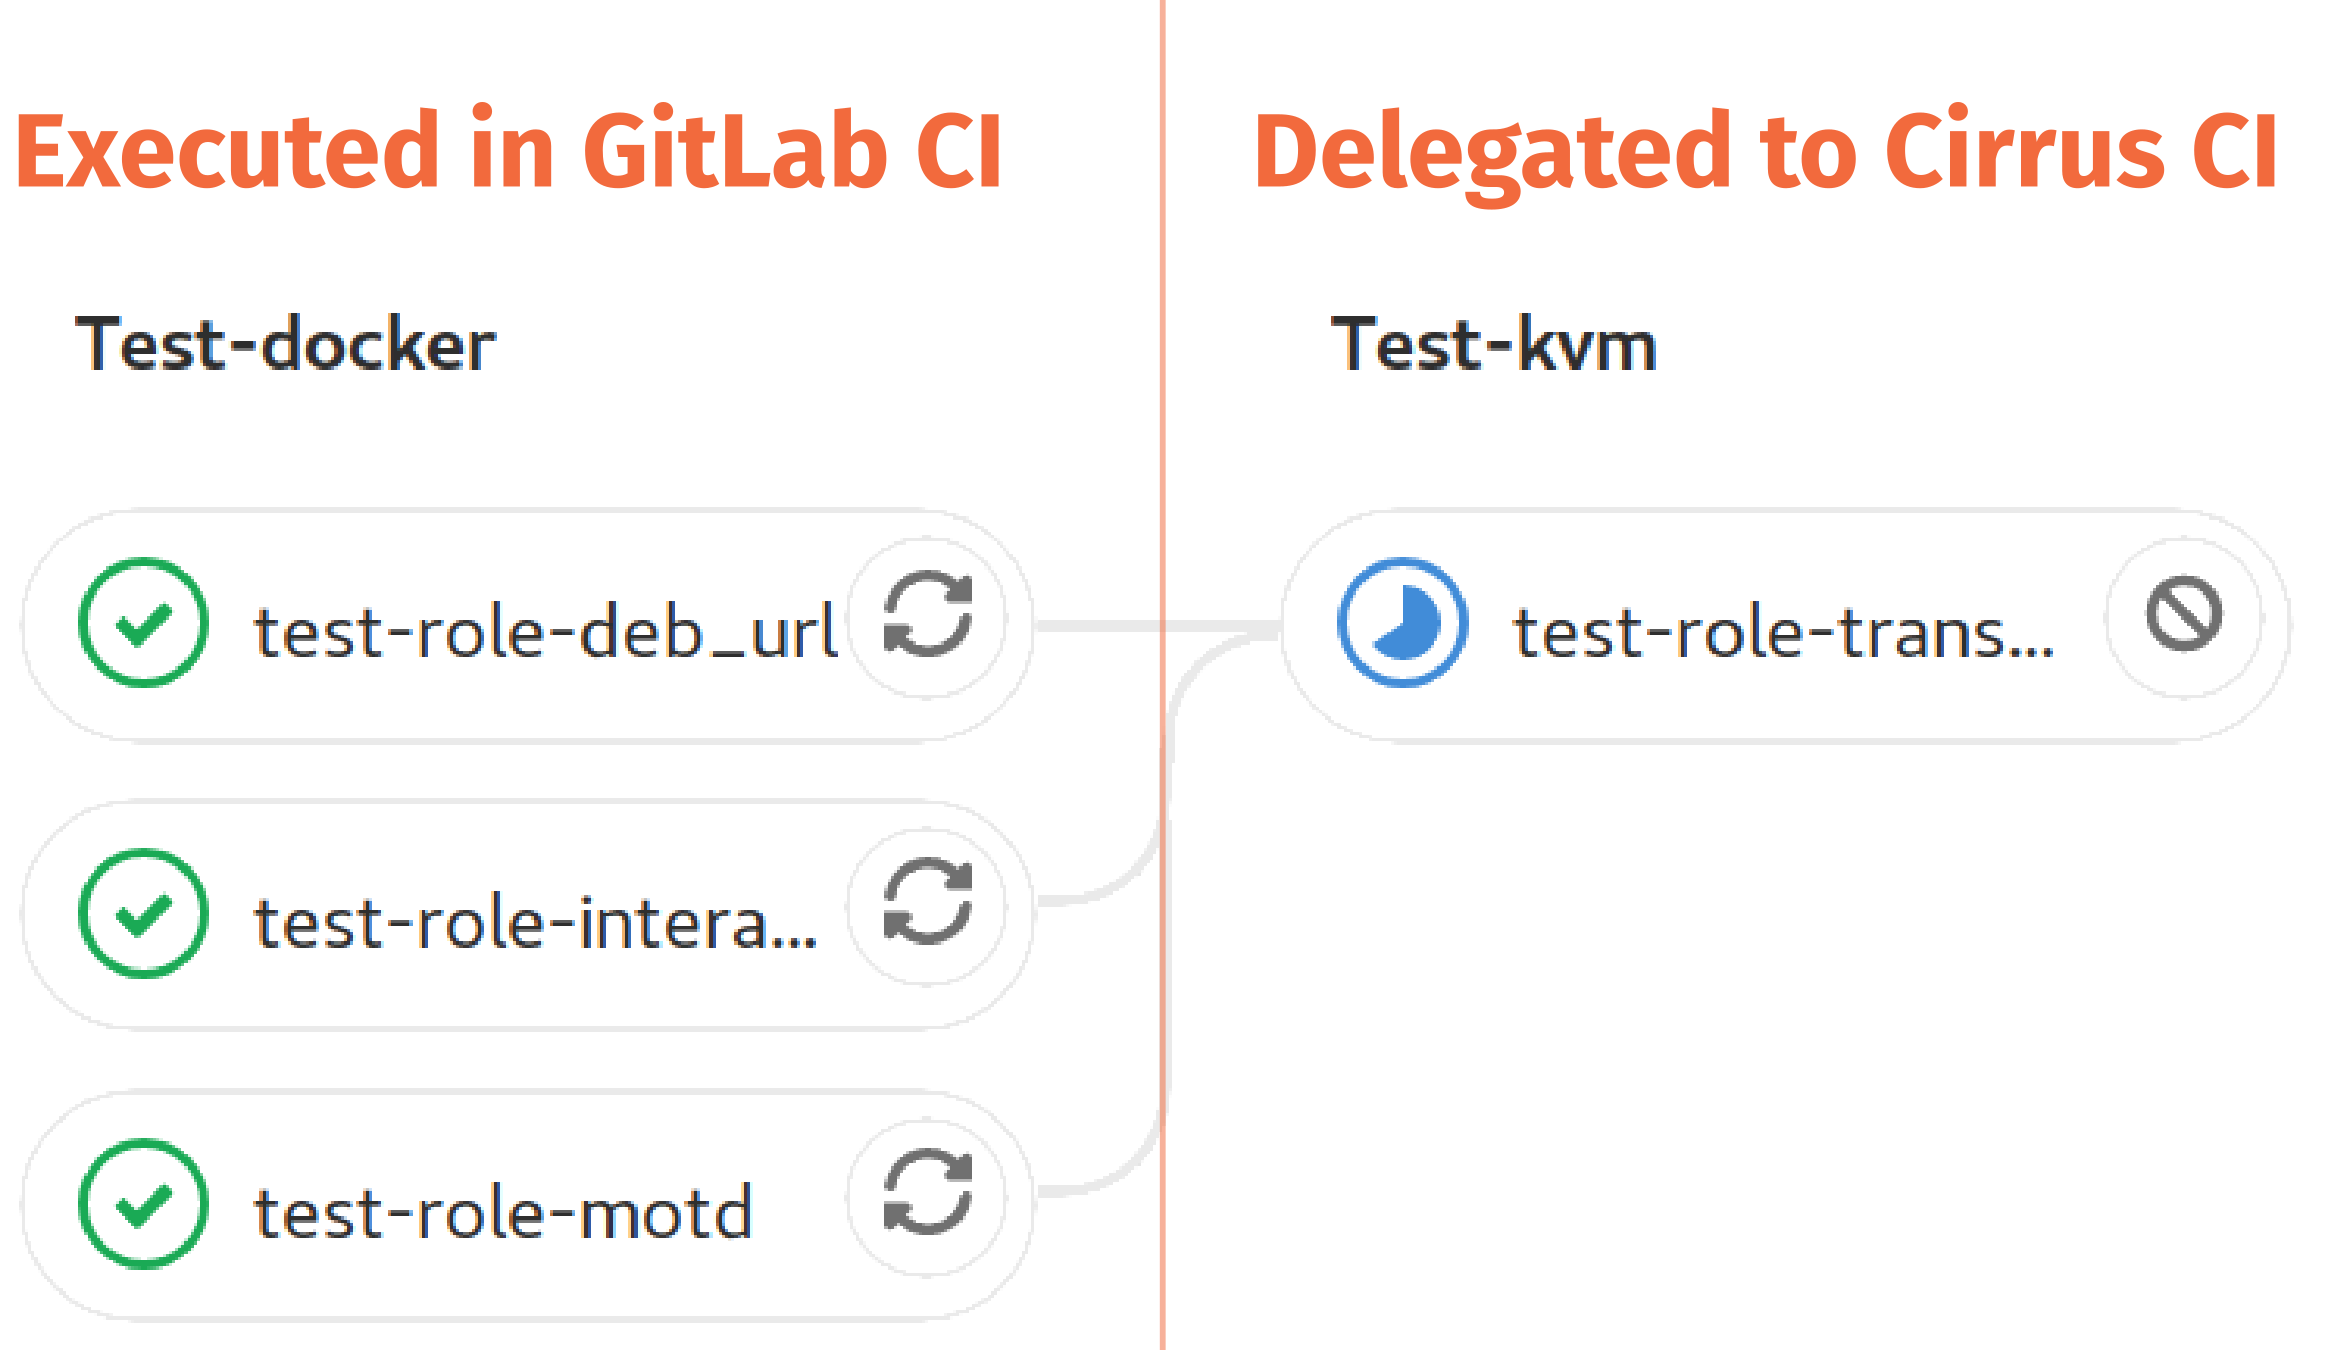 Cirrus jobs in GitLab CI